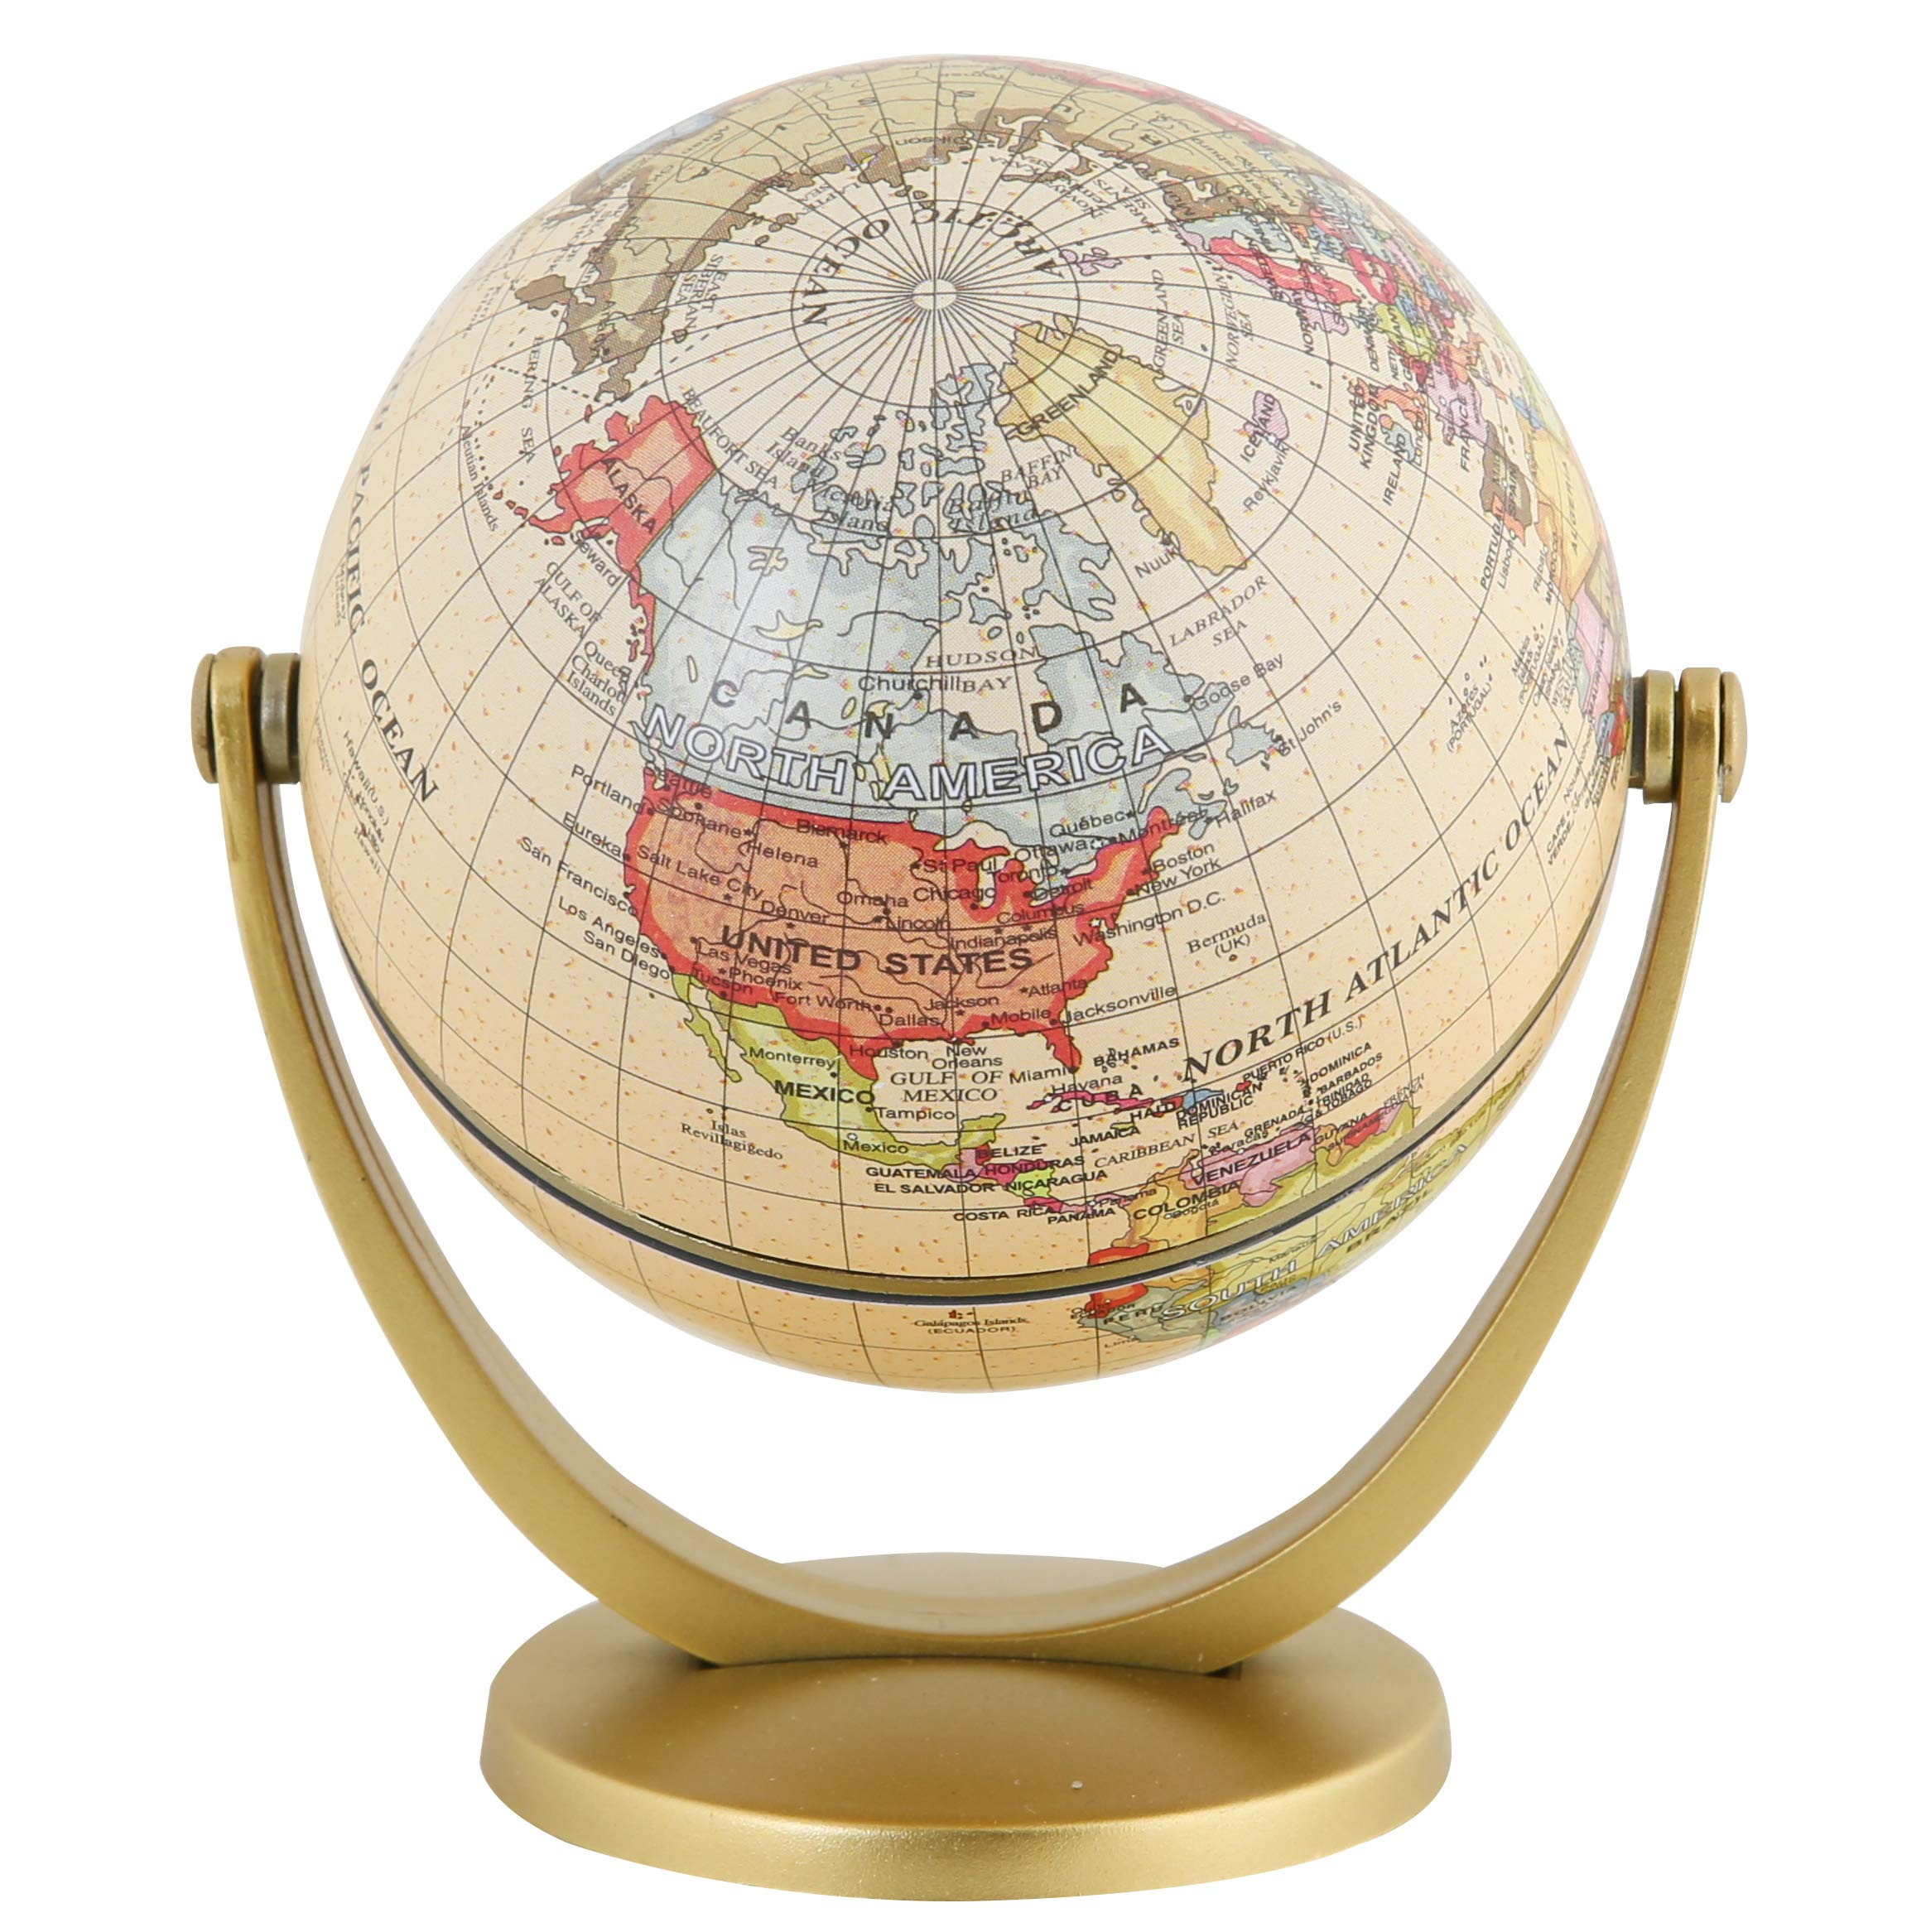 Exerz Mini Antique Globe 4-inch / 10 cm - Swivels in All Directions Educational, Decorative, Unique, Small World, Desktop, Vintage (Mini Antique Globe) by Exerz